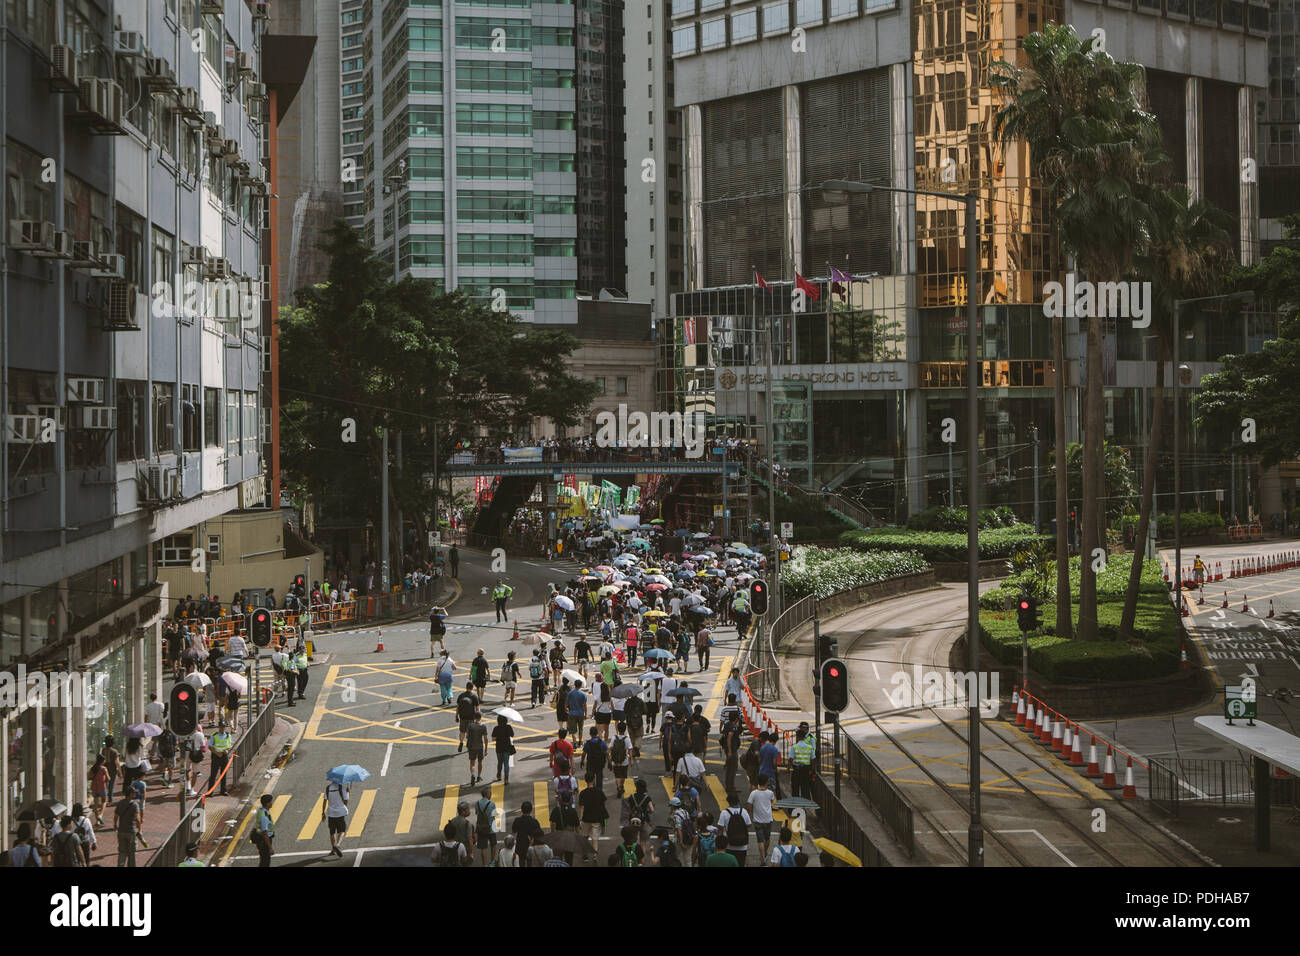 June 30, 2017 - Hong Kong, Hong Kong - Thousands of demonstrators seen marching through the streets of Hong Kong..Thousands came together and demonstrated to mark the 20th anniversary of the Handover from Britain to China, Hong Kong's return to China on July 1st 1997. The protestors marched through sun and rain from Victoria Park to Admiralty, taking a stand on a variety of human-rights-related causes. (Credit Image: © Viola Gaskell/SOPA Images via ZUMA Wire) - Stock Image